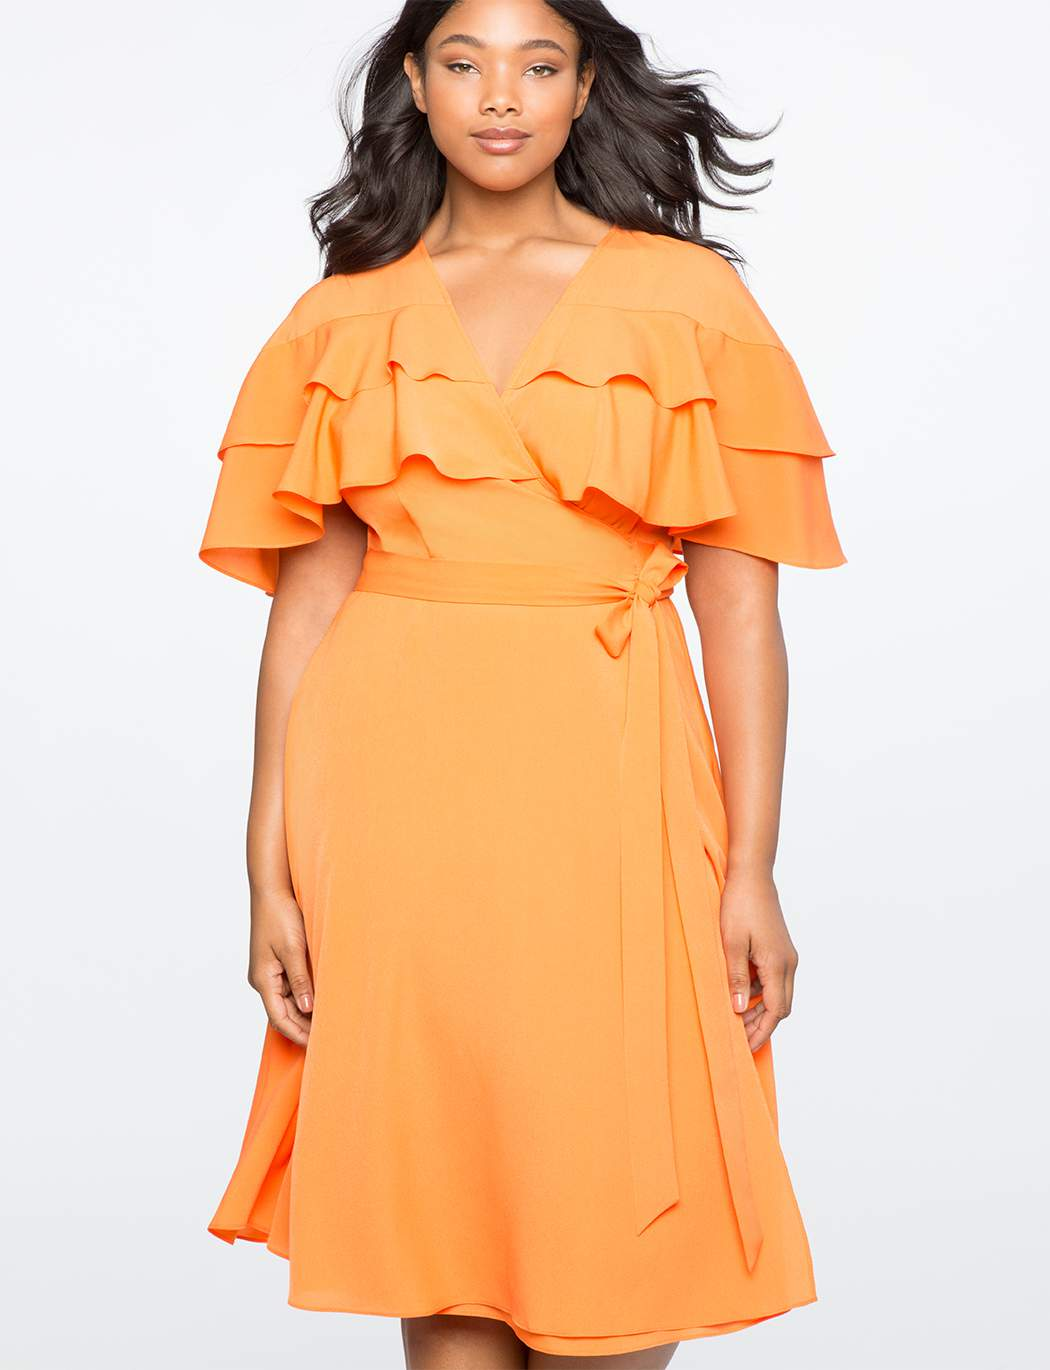 Accentuate Your Curves with These 7 Plus Size Wrap Dresses!